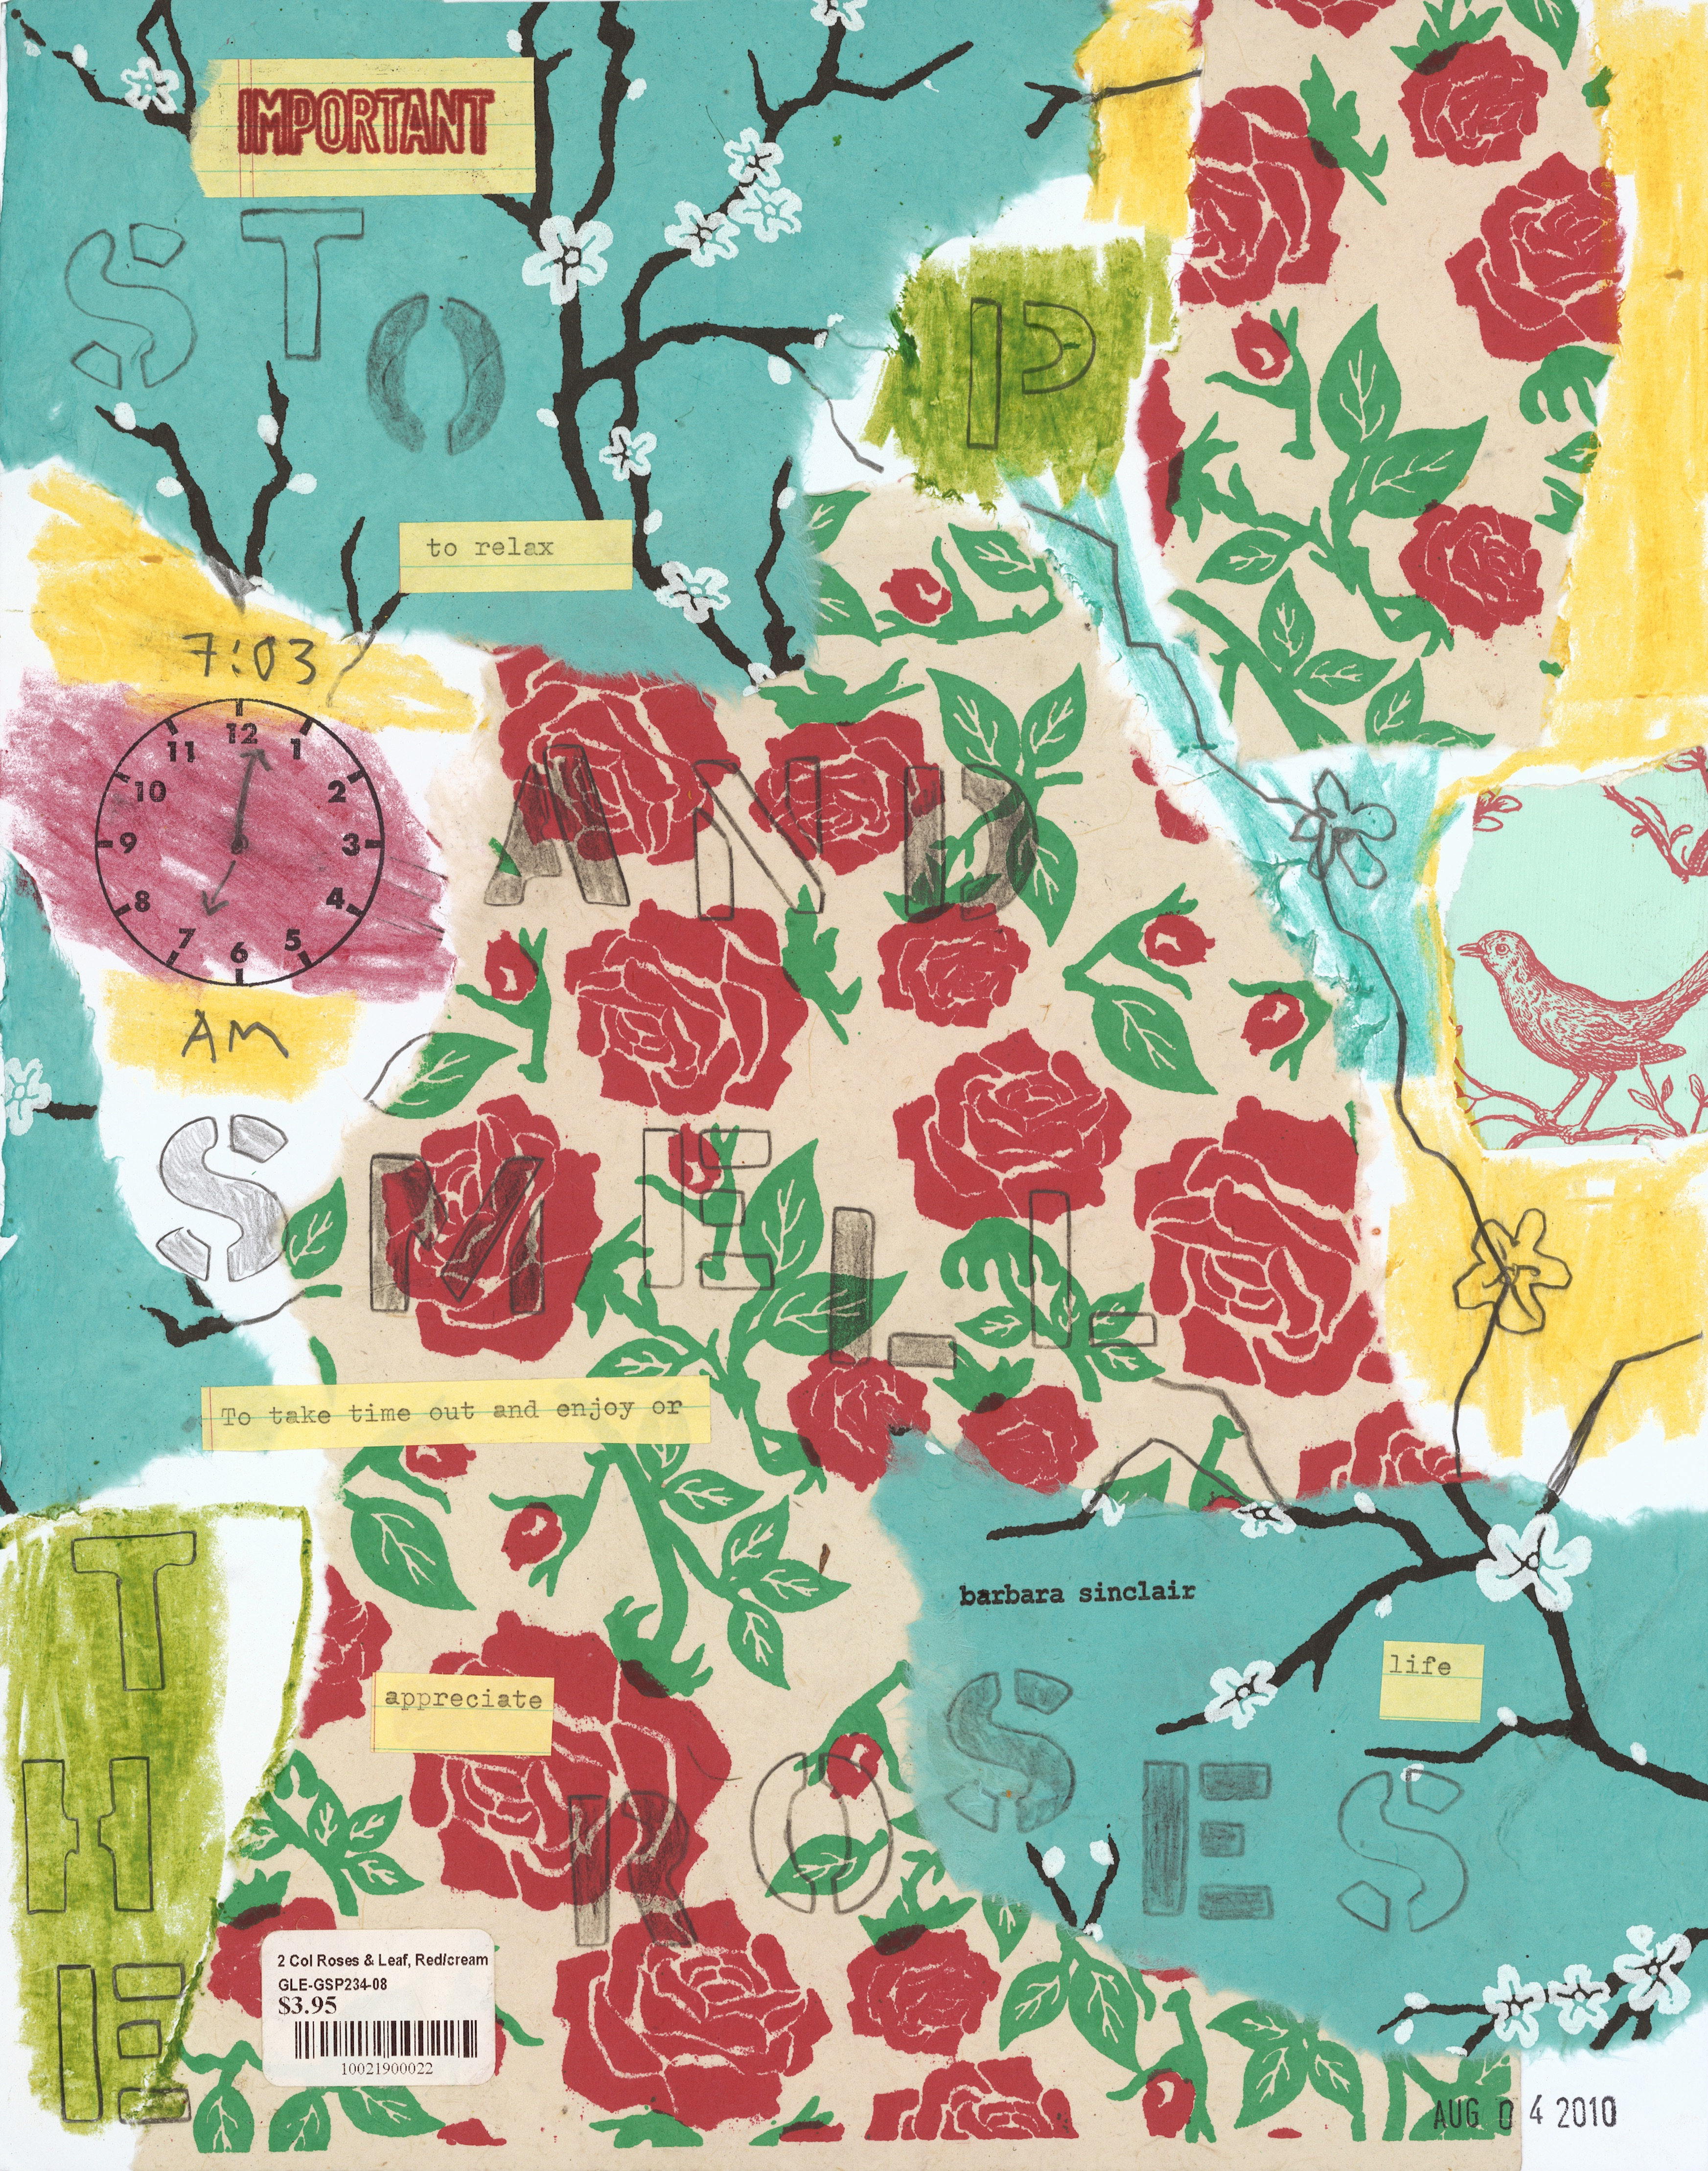 Stop and Smell the Roses Idiom by Barbara Sinclair